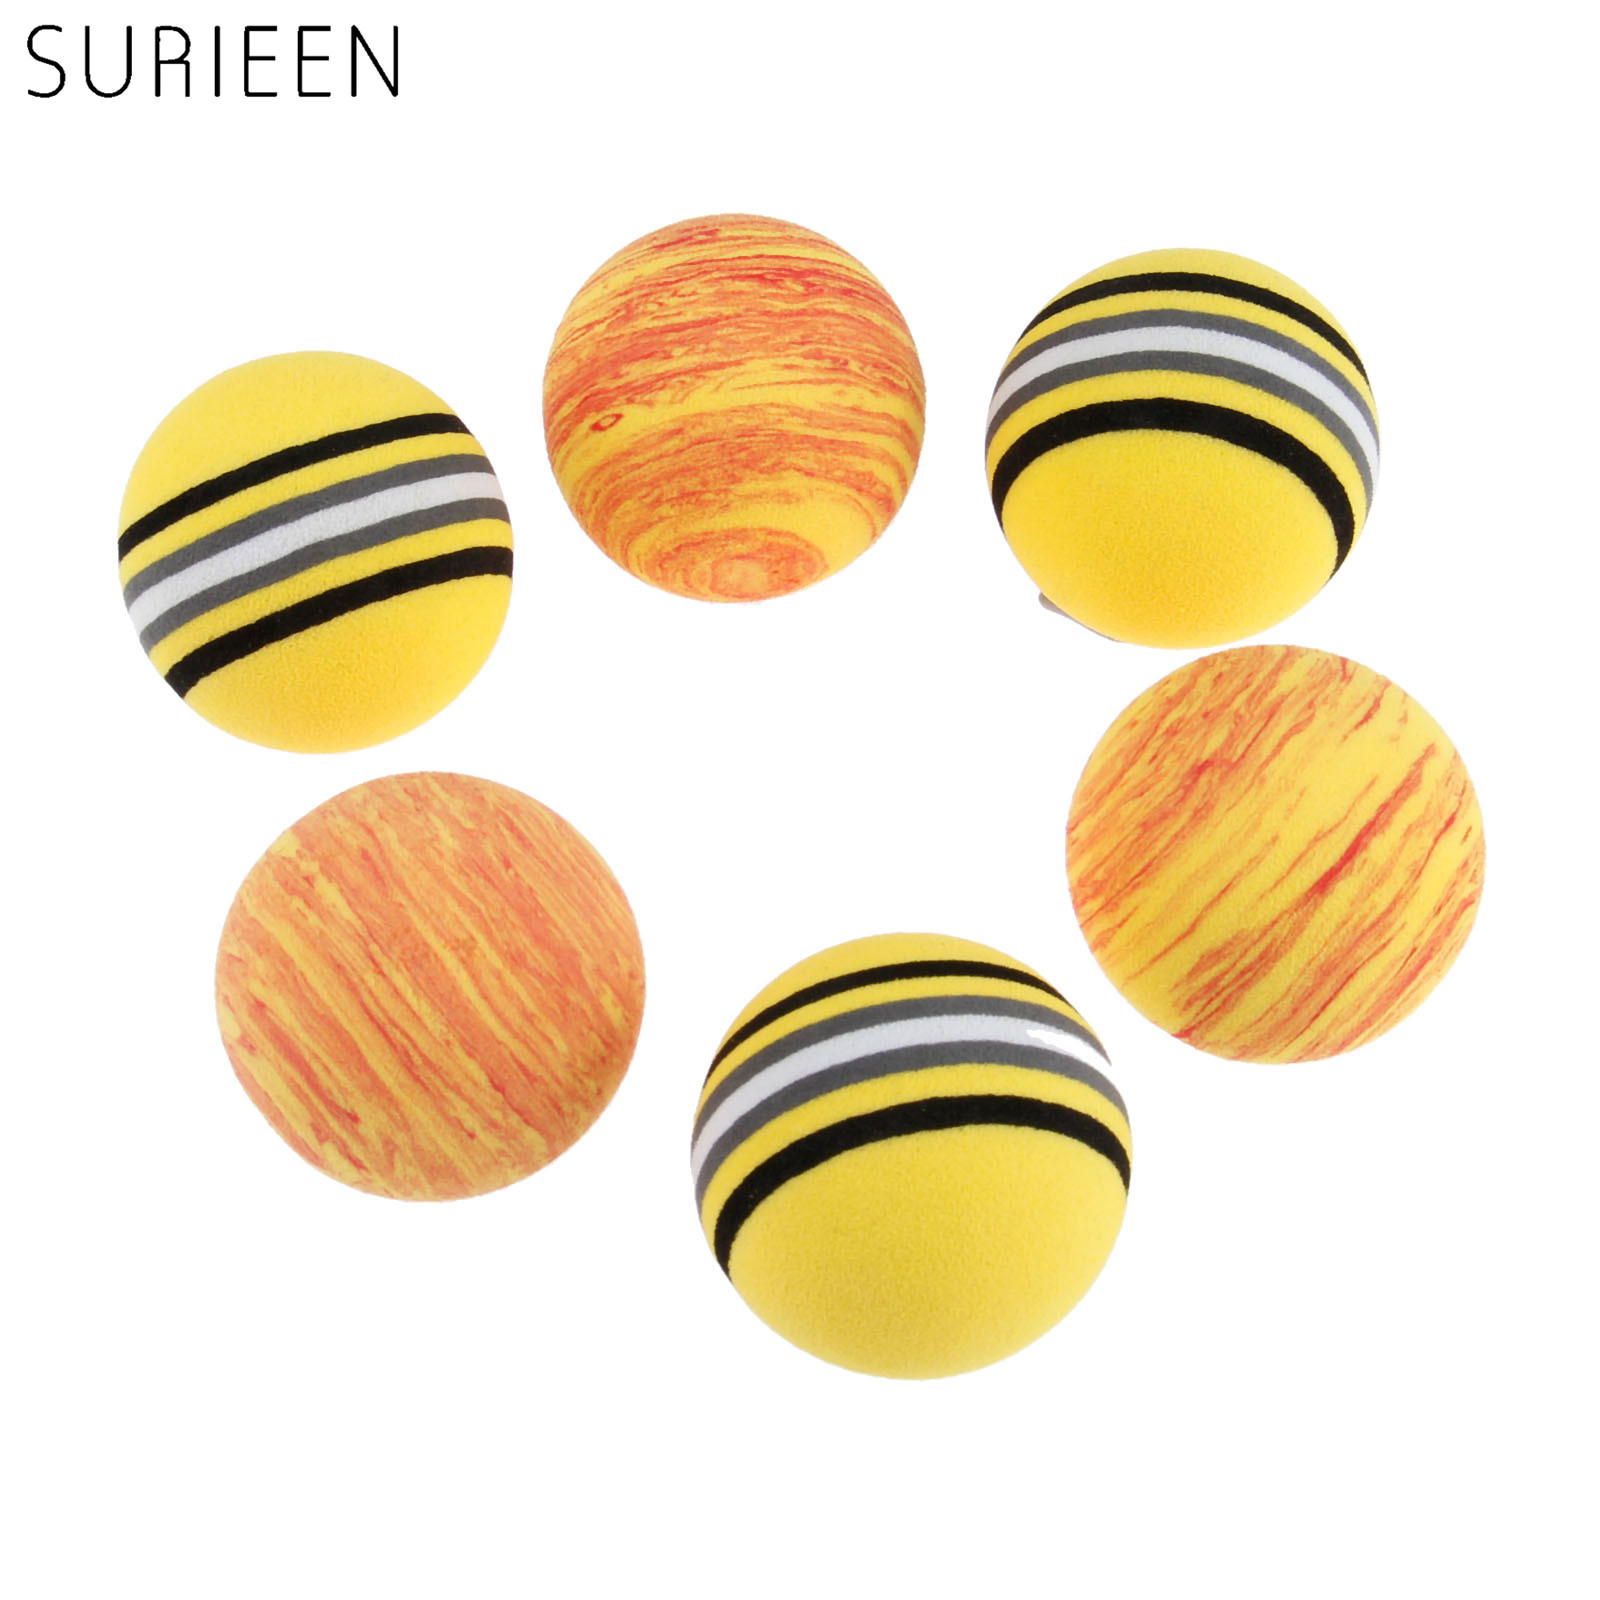 SURIEEN 10Pcs 41mm Golf Rainbow Balls EVA Solf Foam Sponge Golf Balls Tennis Swing Training Light-weight Golf Practice Balls